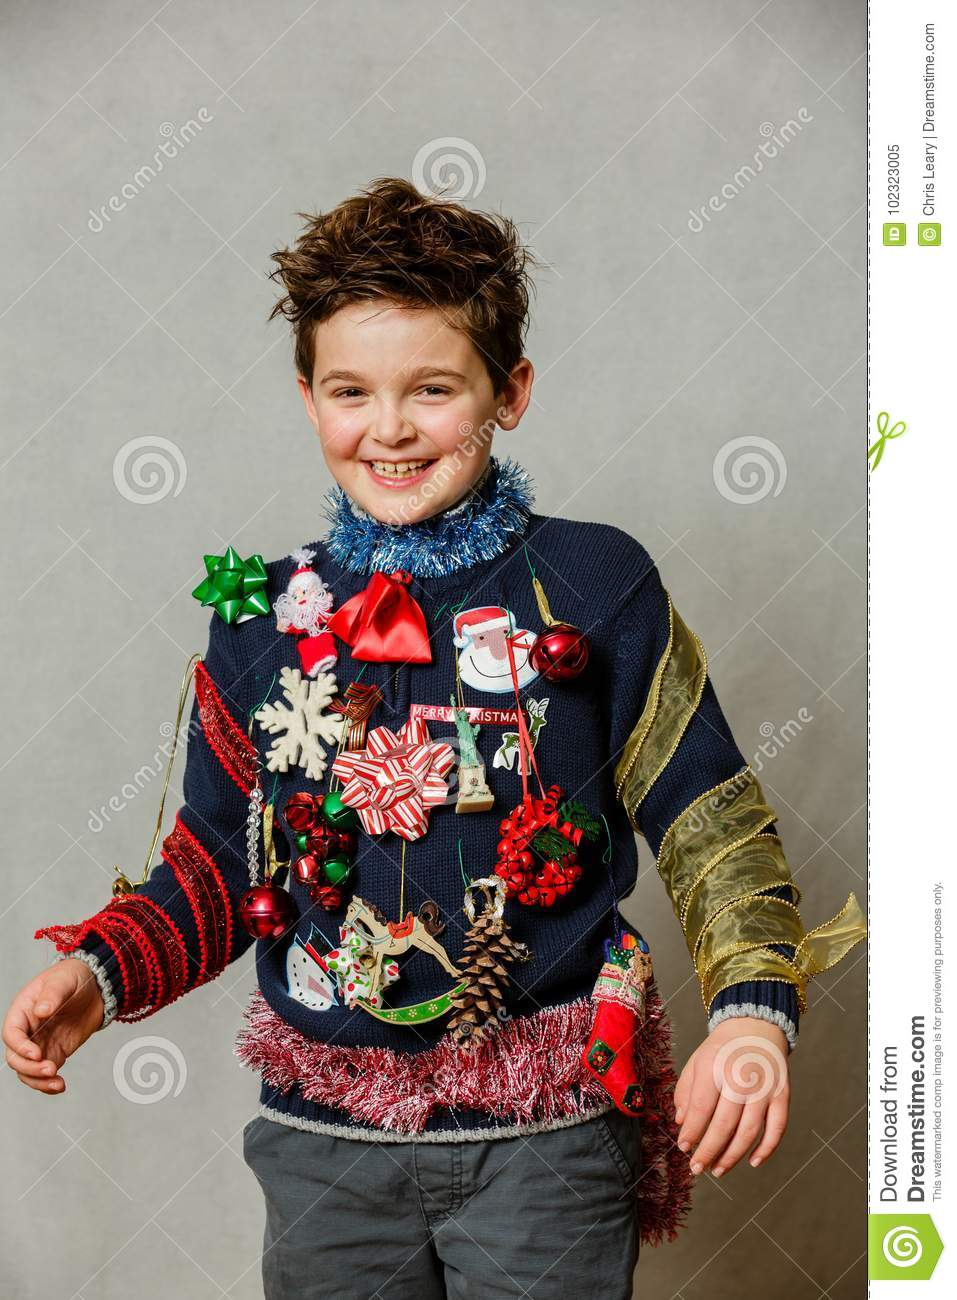 Ugly Christmas sweaters have become a great party idea and this year it seems this party theme has hit all new ugly heights! Unfortunately, buying an ugly Christmas sweater can be a costly venture.